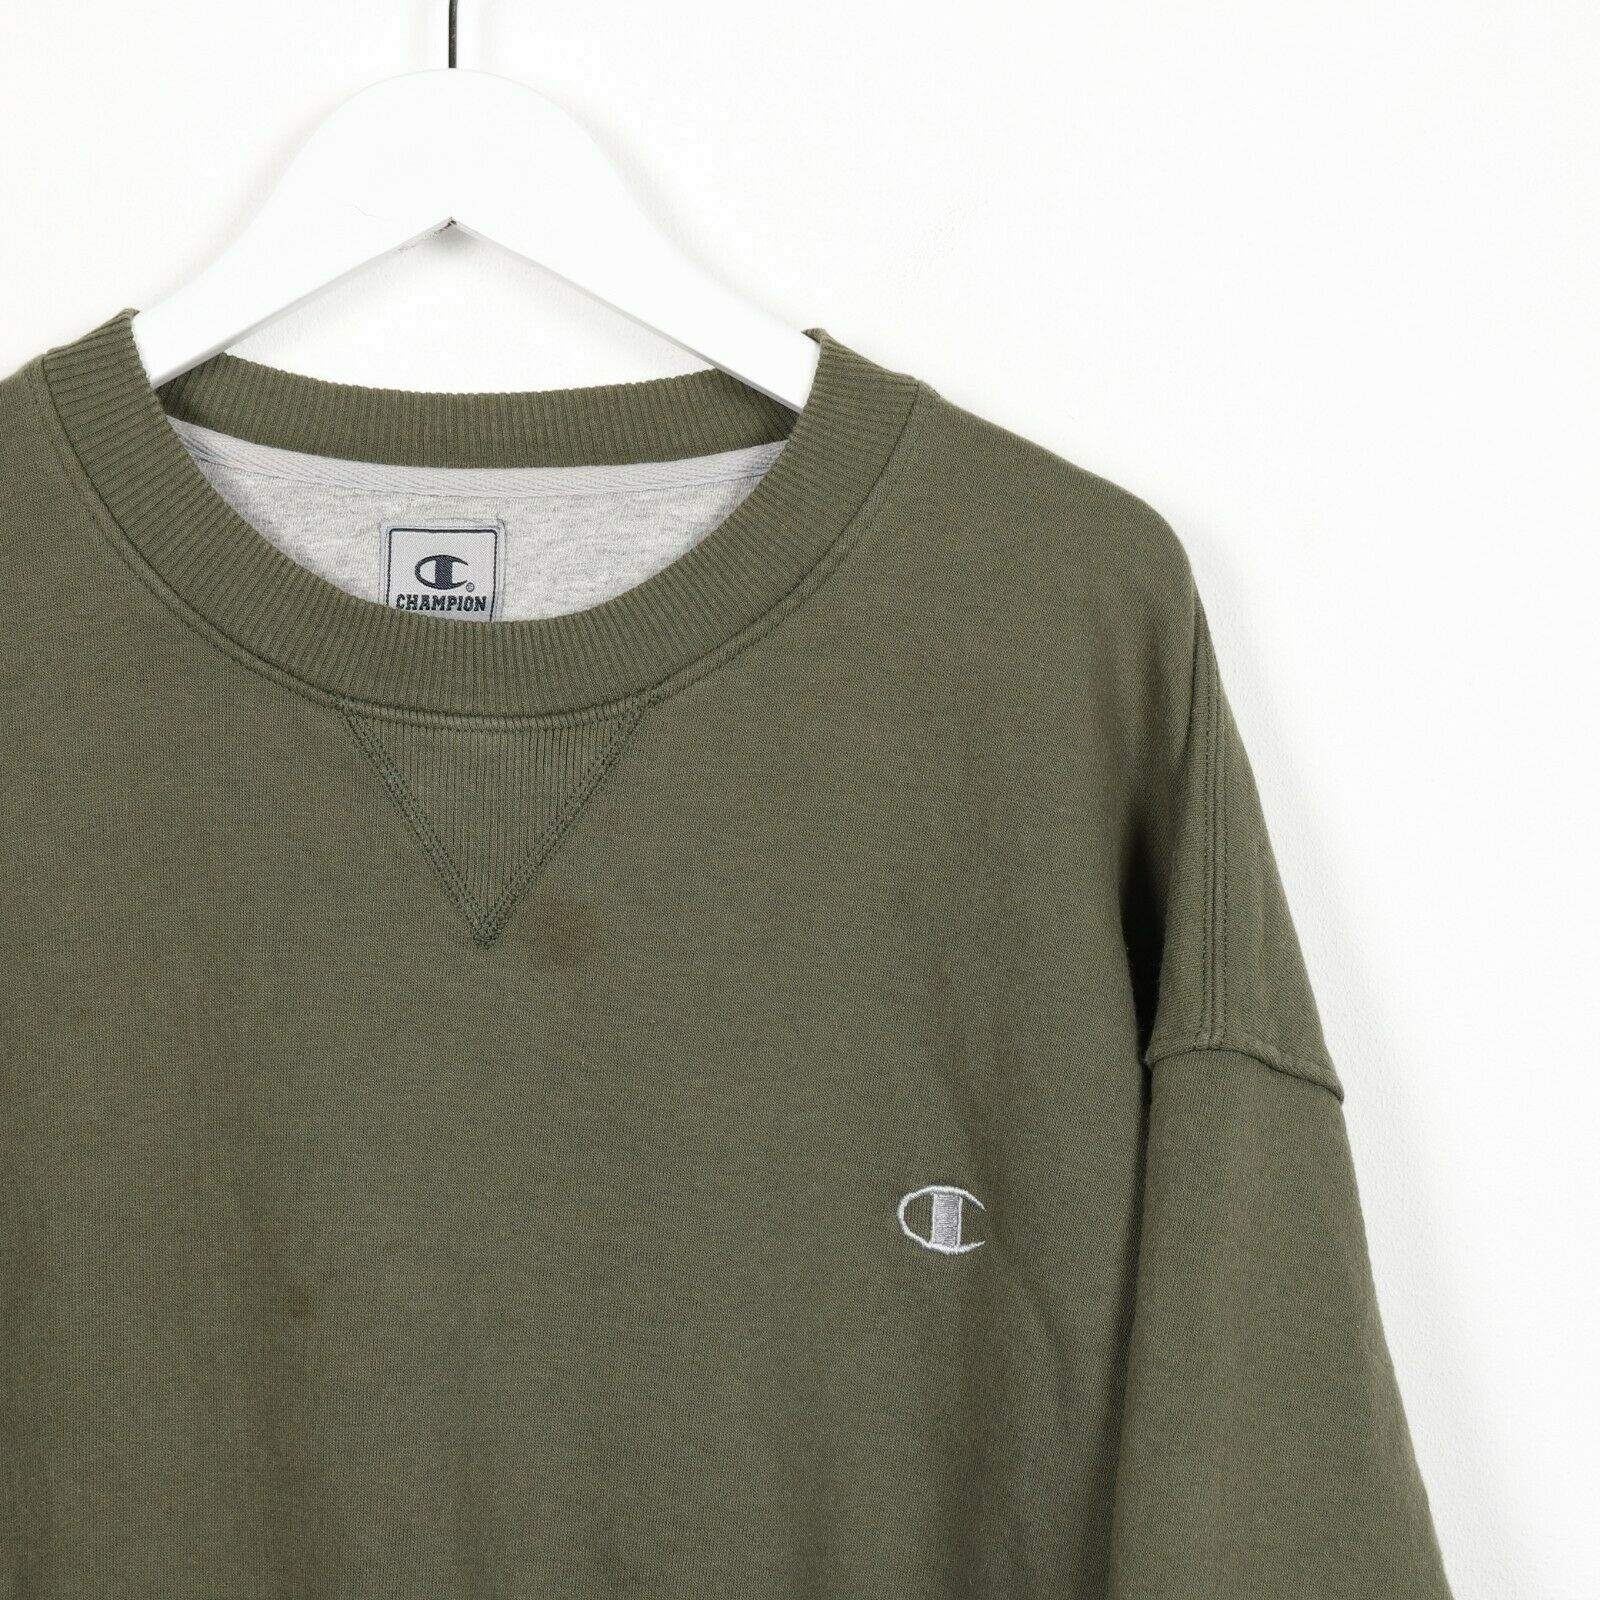 Vintage CHAMPION Small Logo Sweatshirt Jumper Green 2XL